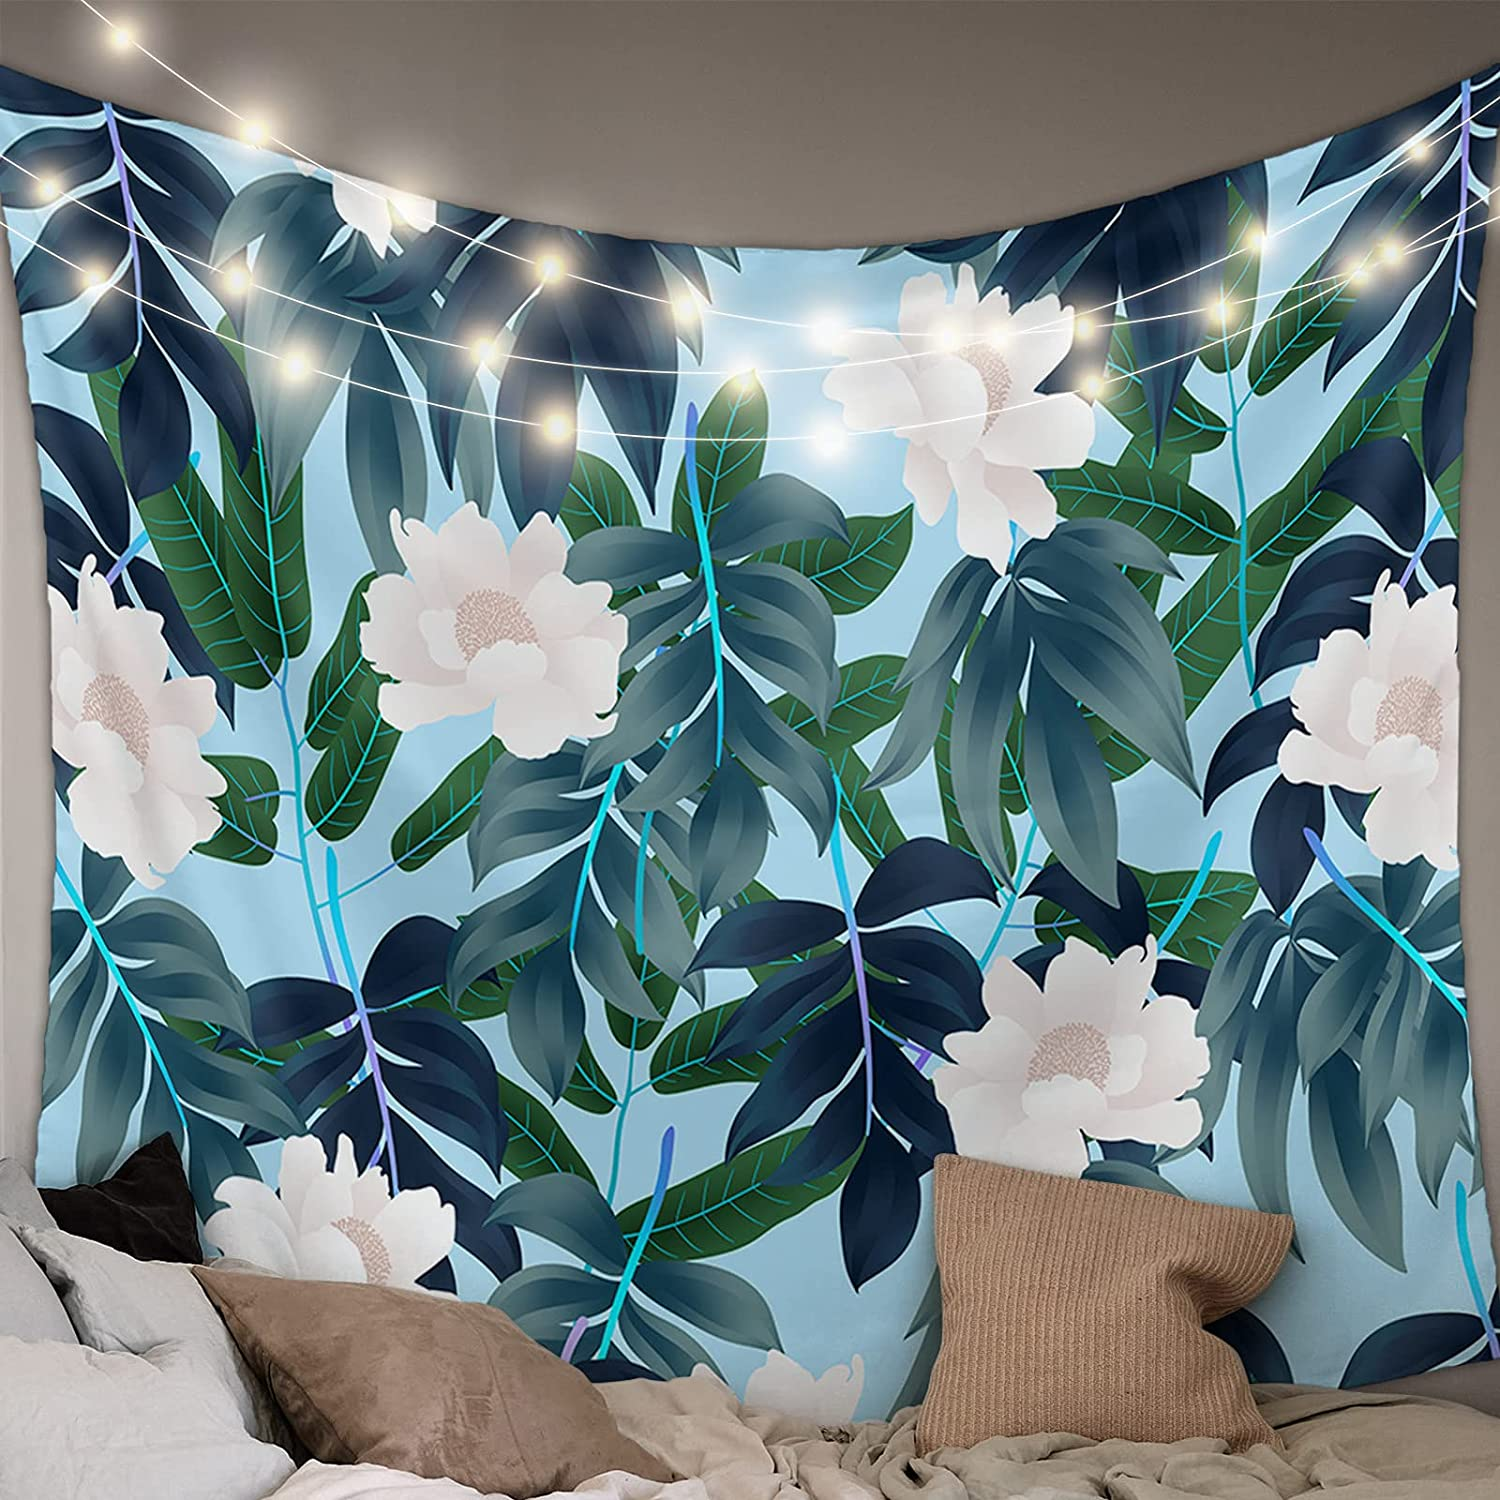 PartyShow New Free Shipping mart Tapestry Wall Hanging for Indoor Room Living O Bedroom